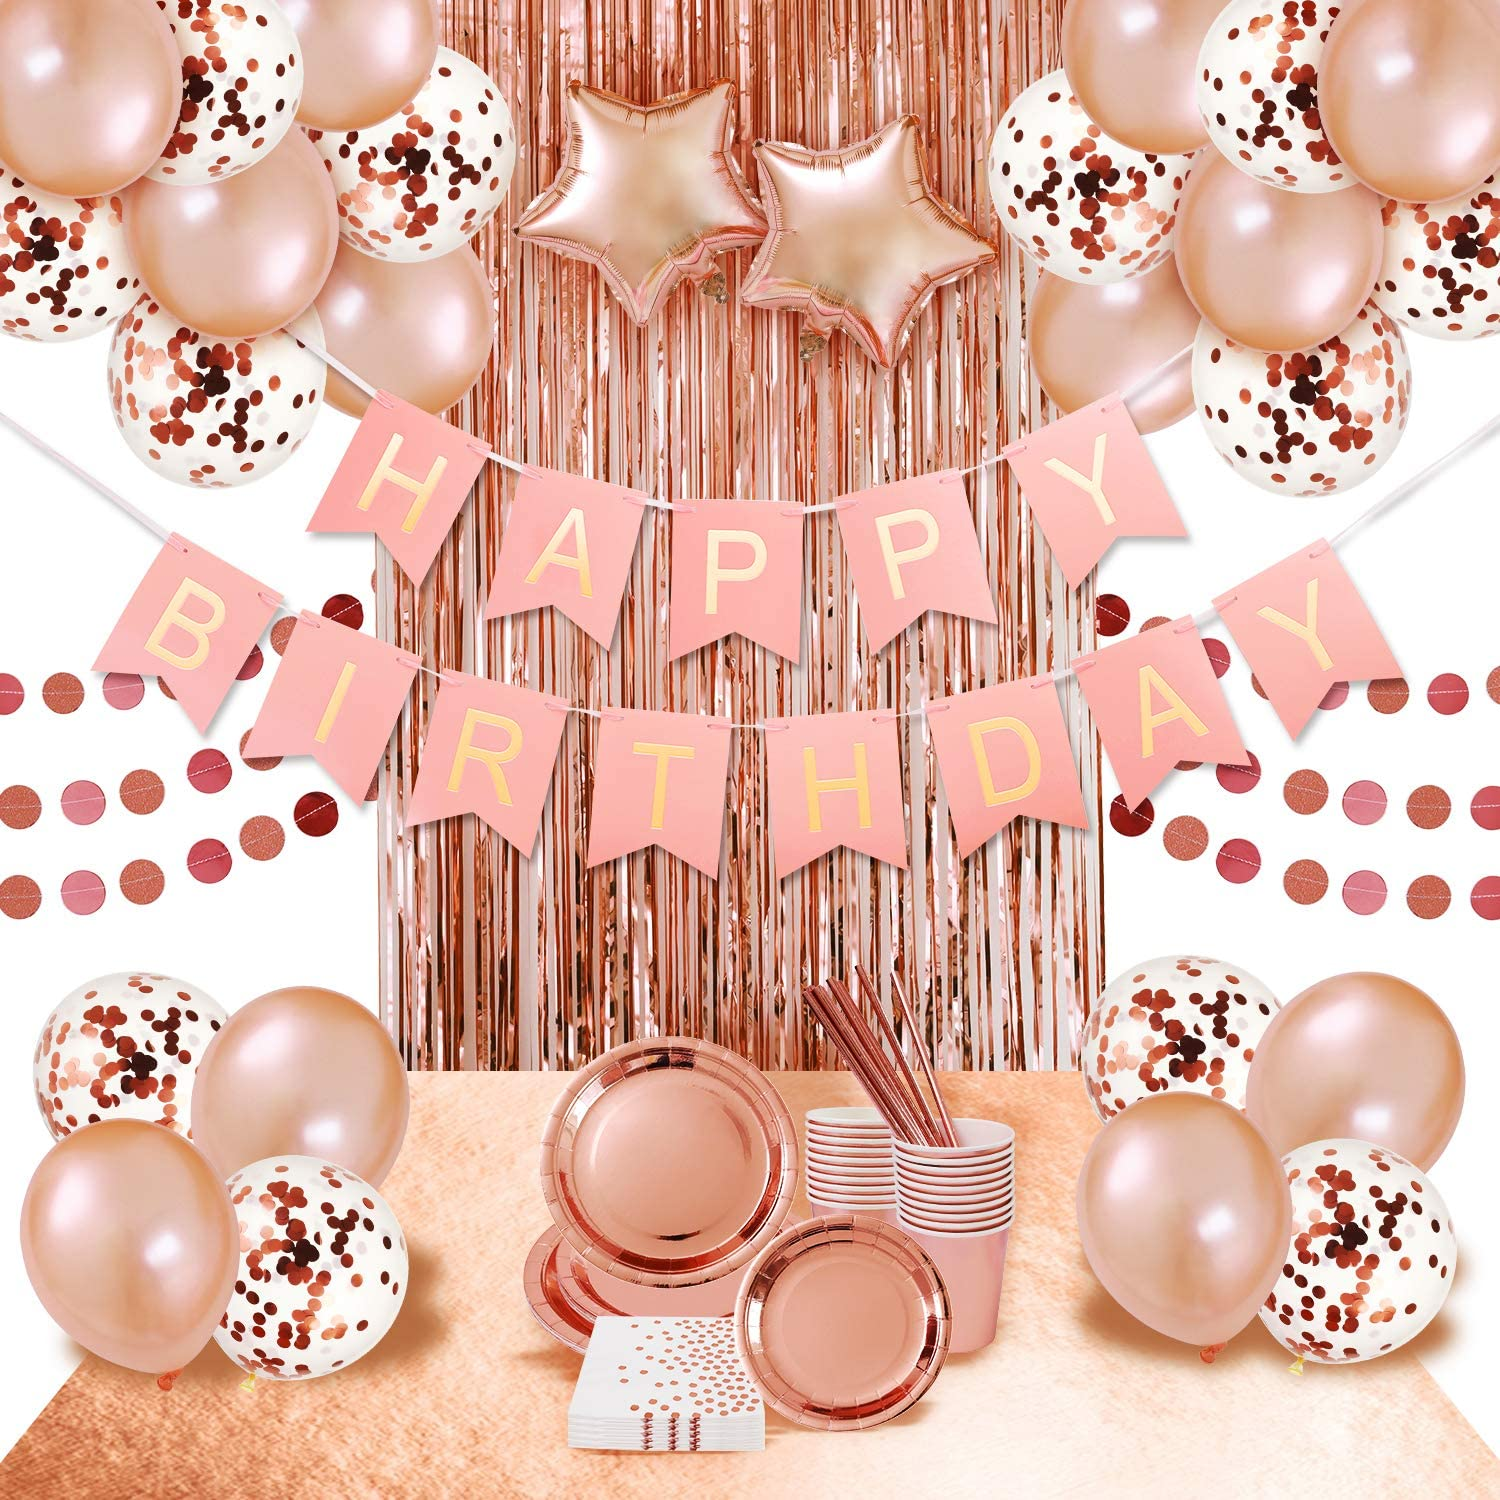 Rose Gold Birthday Party Supplies Decorations Pink Gold Party Supplies  shiny rose gold plates and napkins cups straws balloon rose gold sequin  table